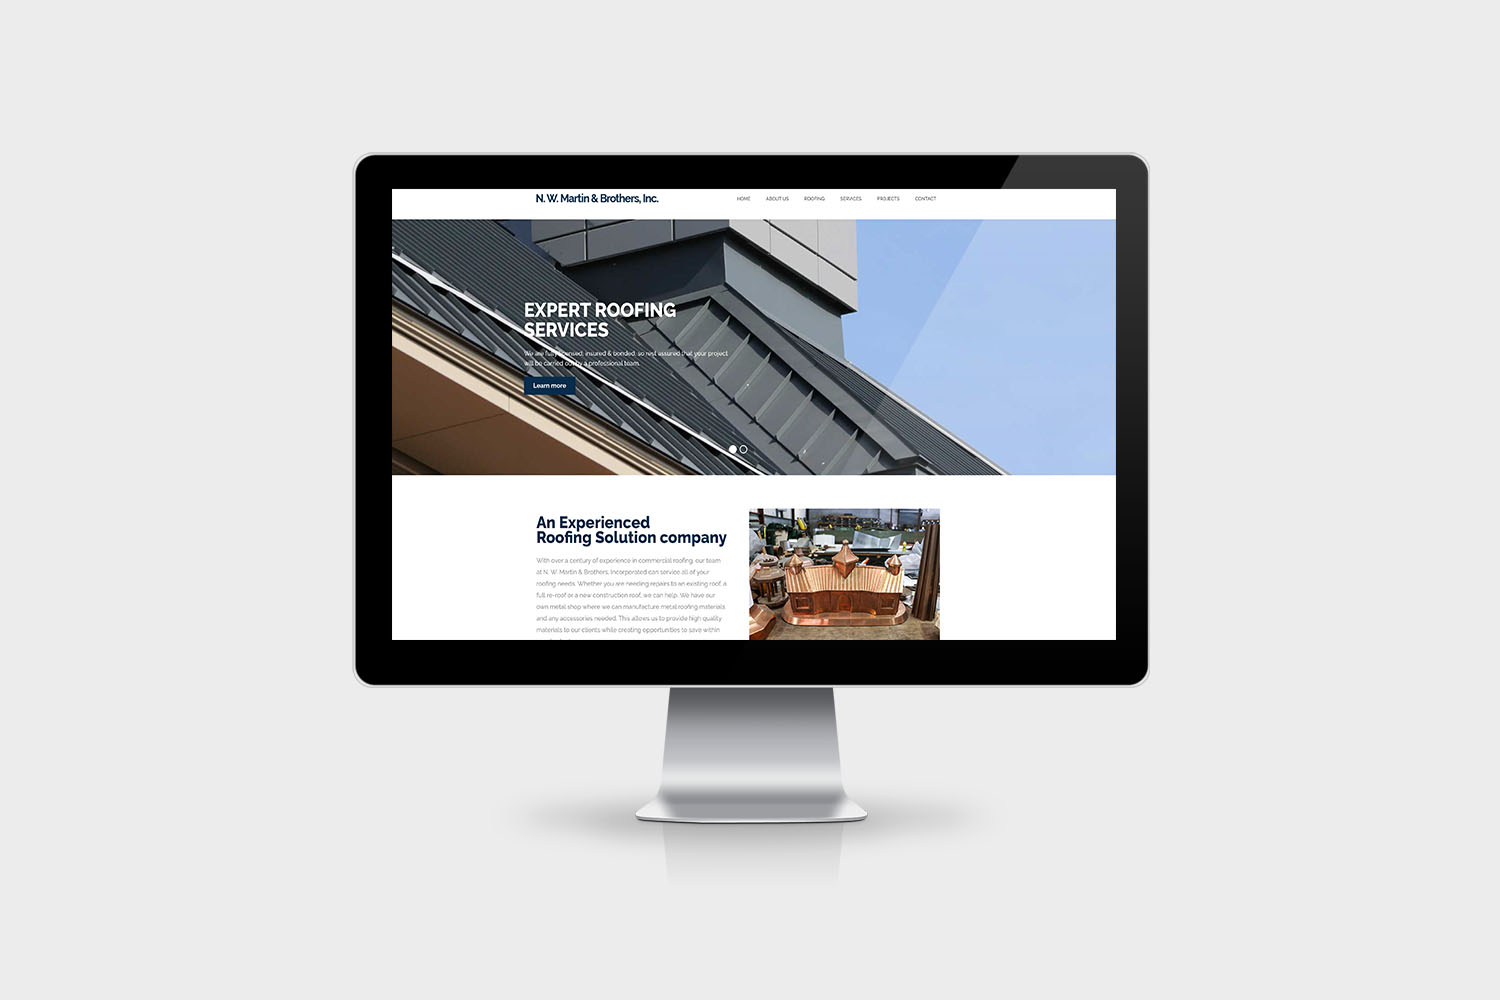 N. W. Martin & Brothers website design